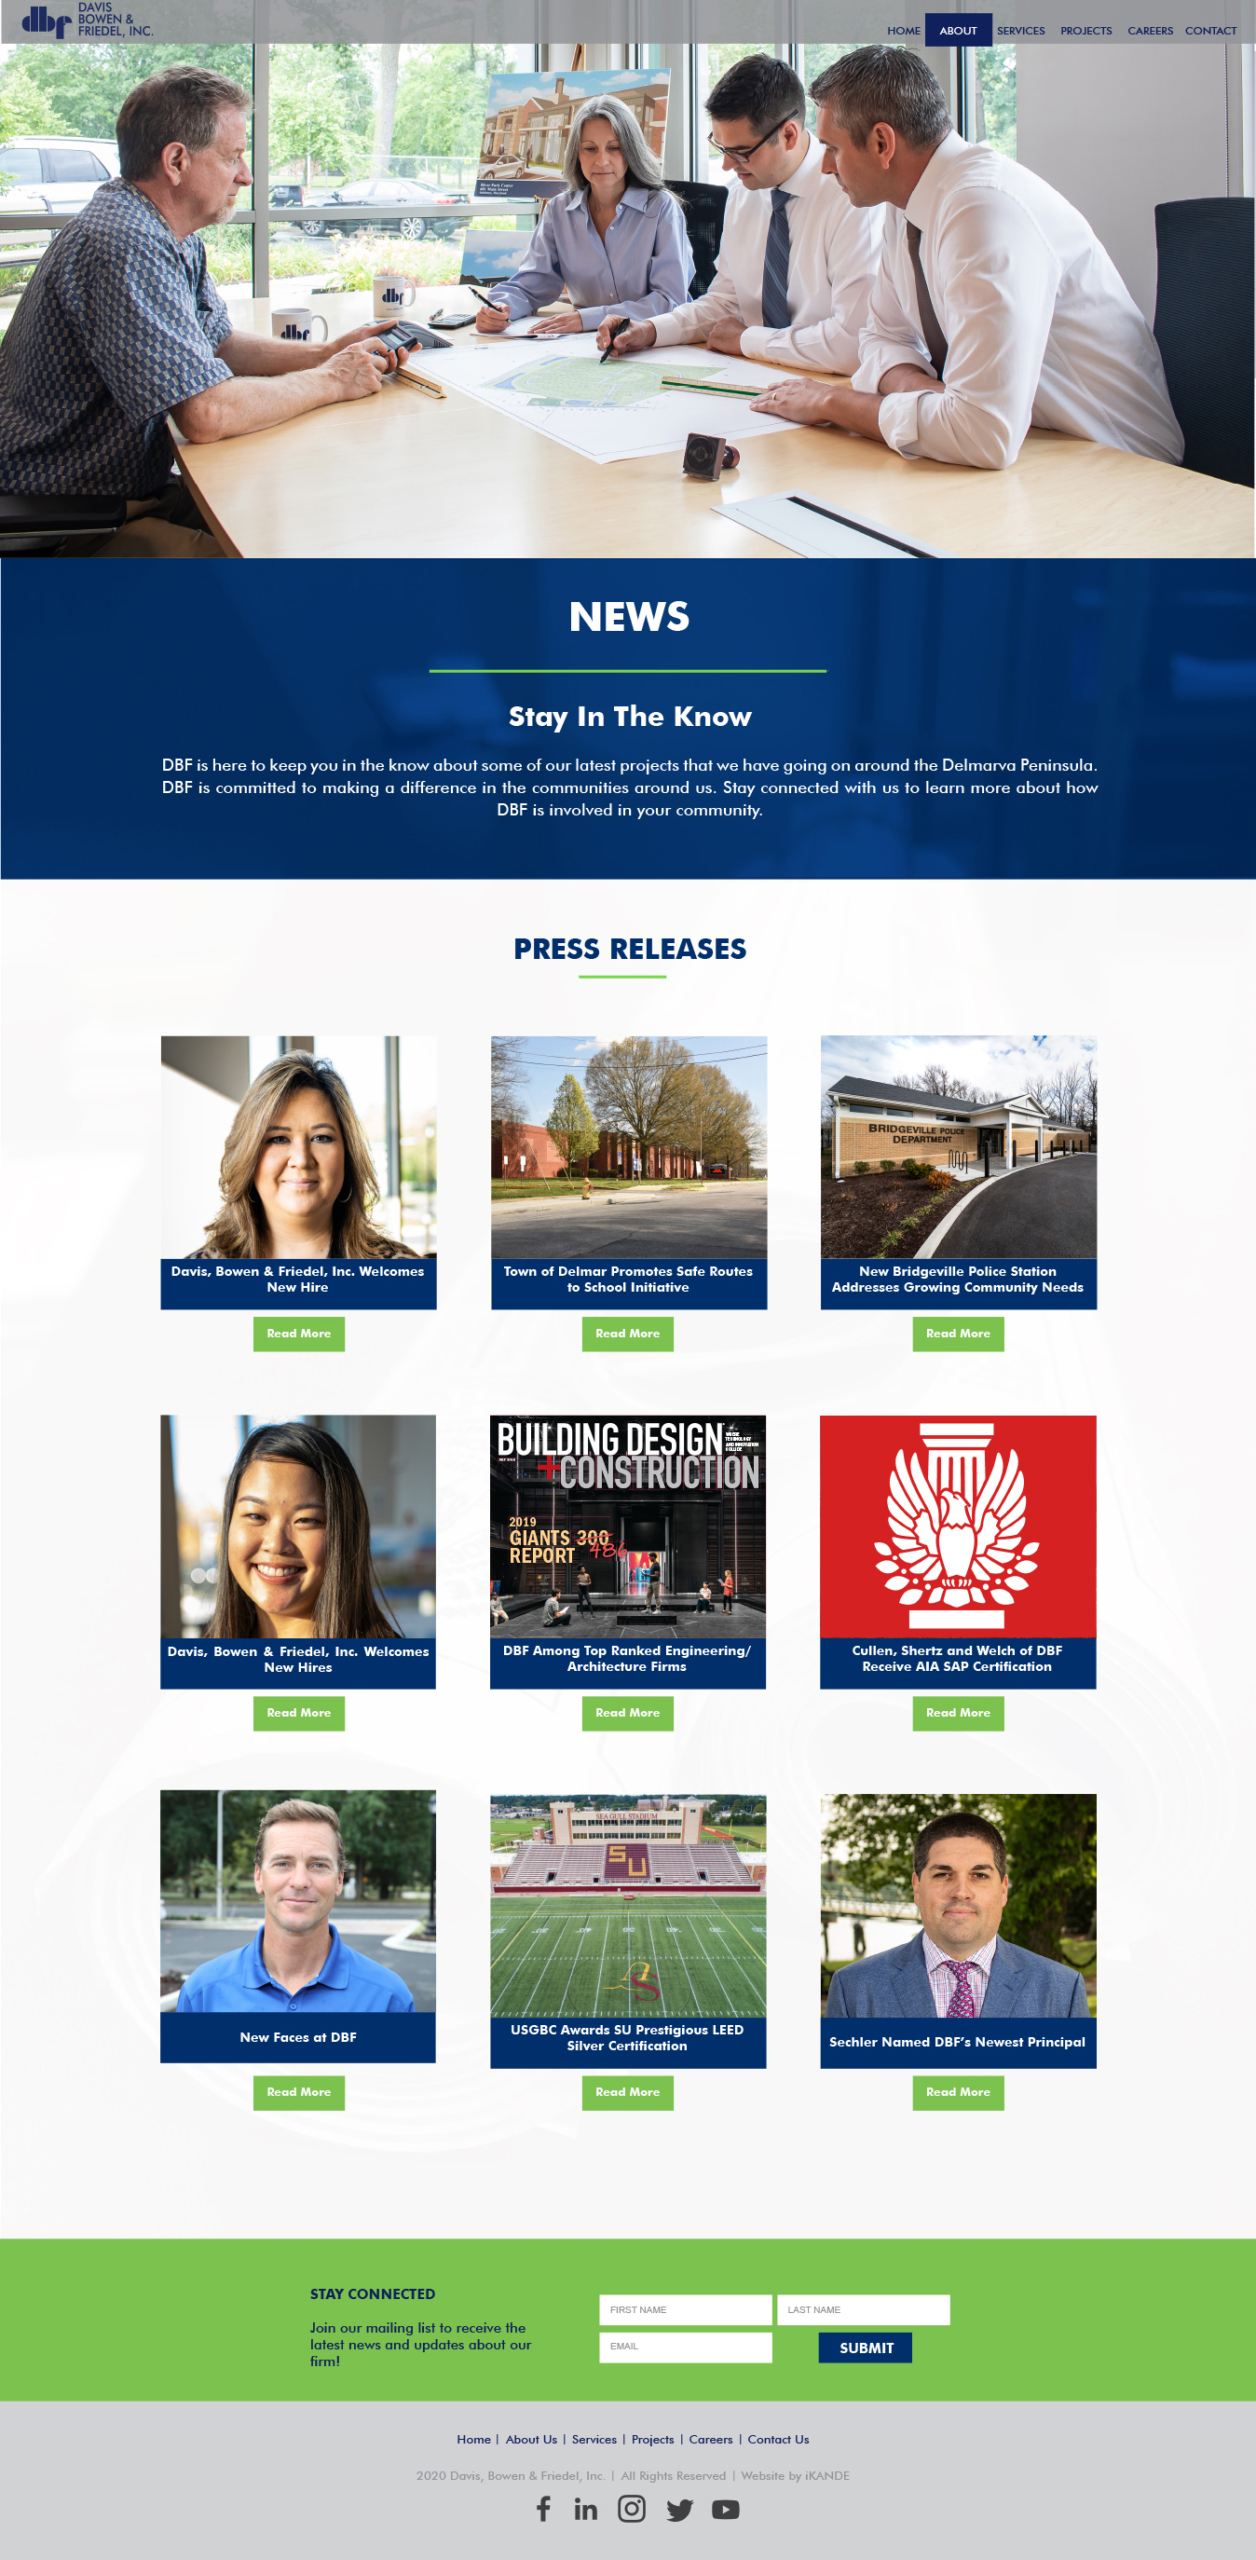 DBF inc news page and web design by iKANDE